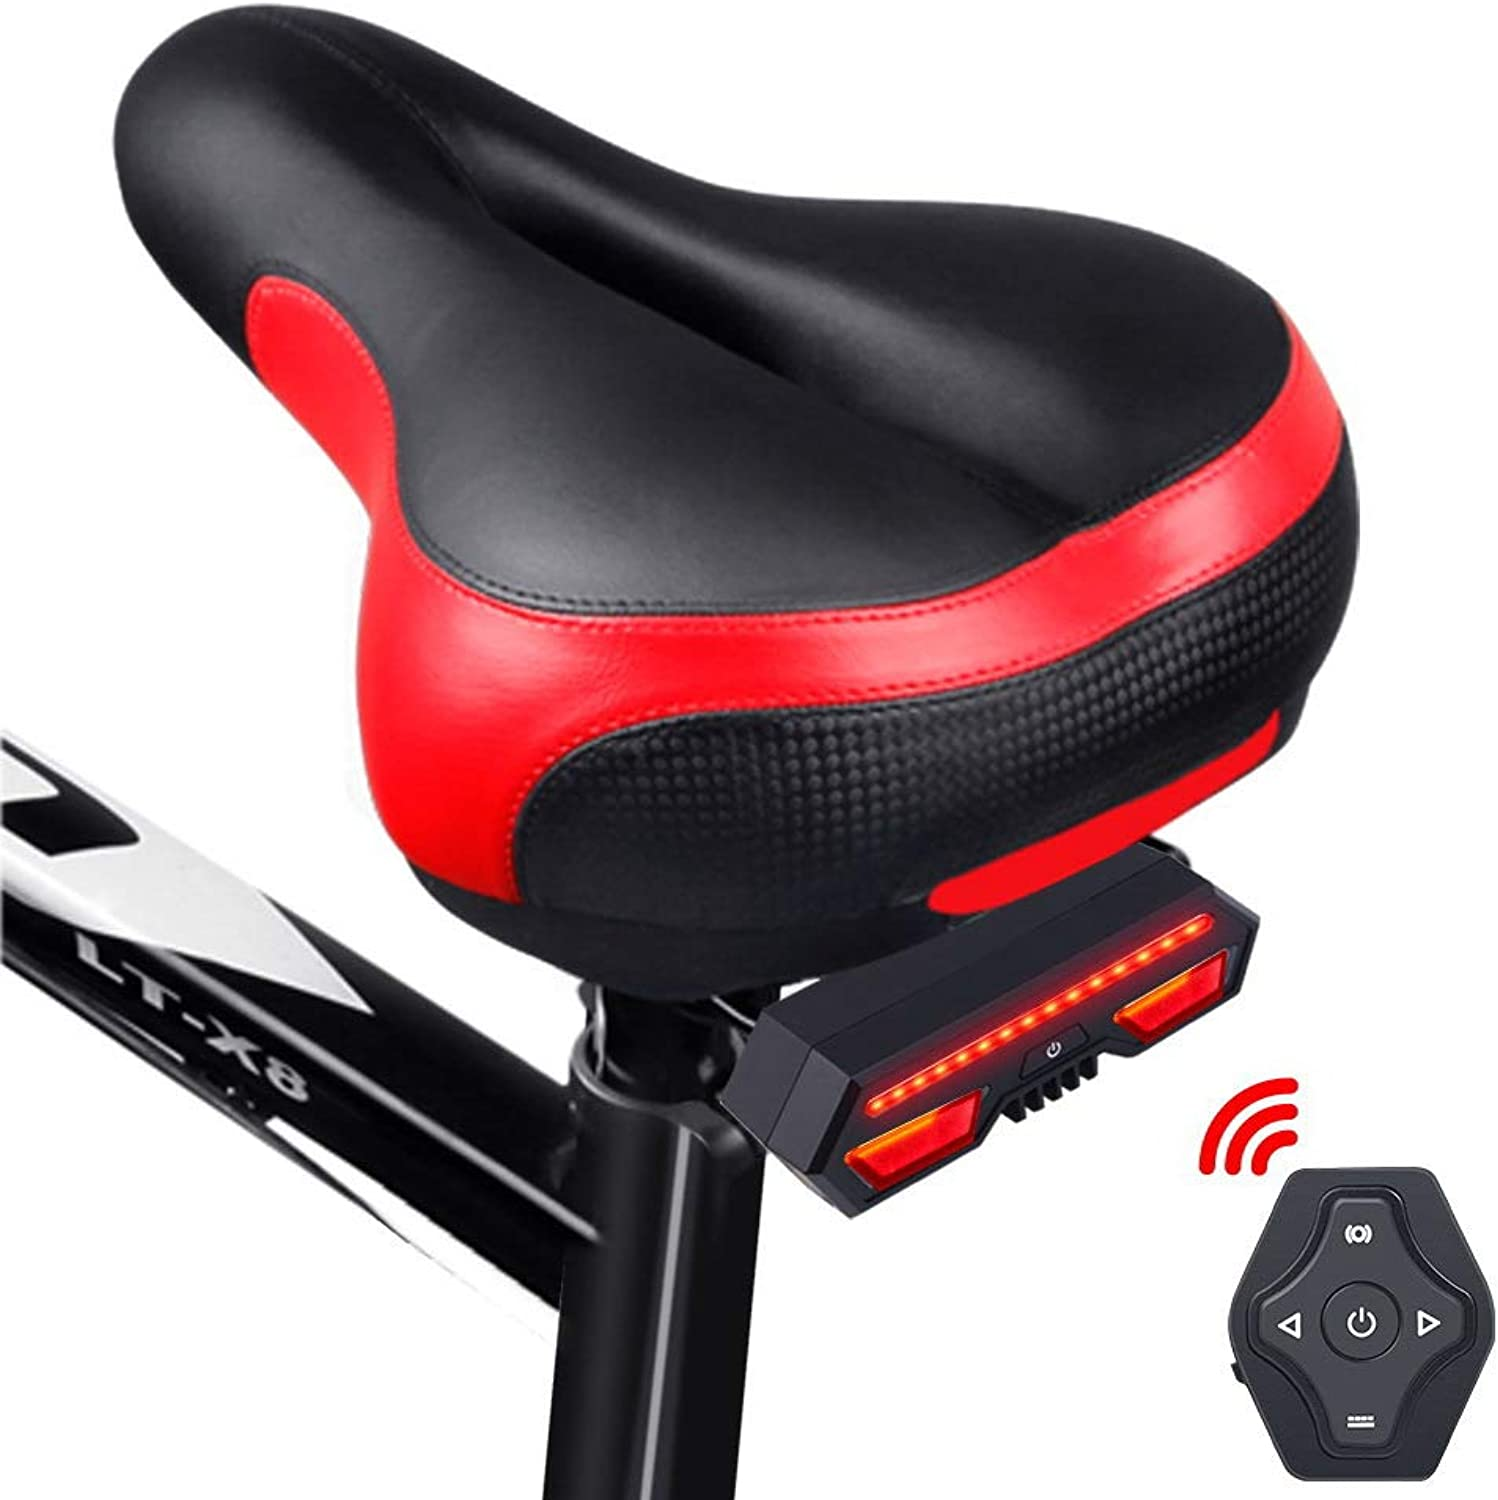 Bike Tail Light, USB Rechargeable, Auto On Off, Brake Sensing, IPX4 Waterproof, Fits to Any Road Bikes